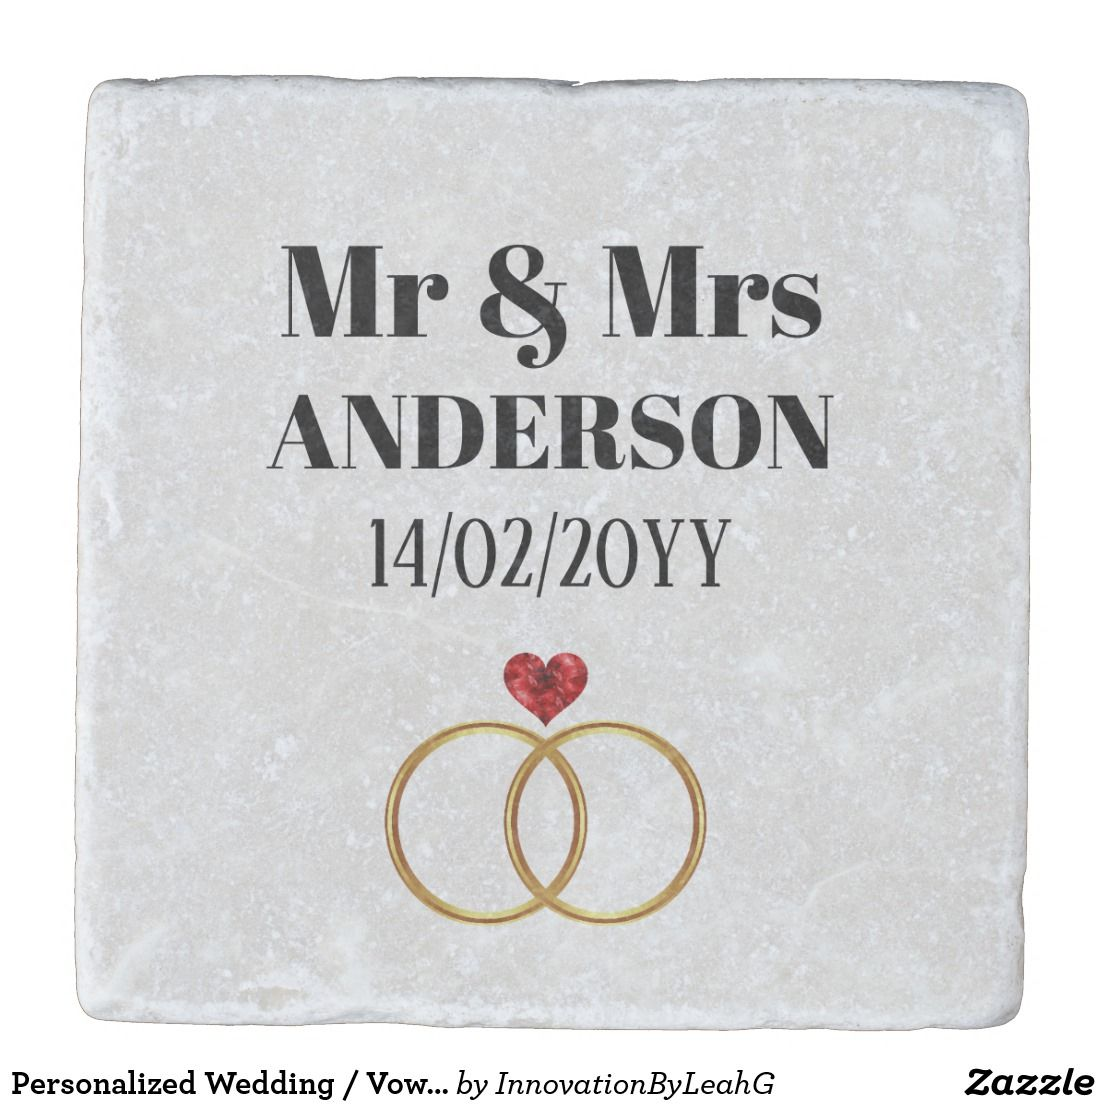 Personalized Wedding / Vow Renewal / Anniversary Stone Coaster ...